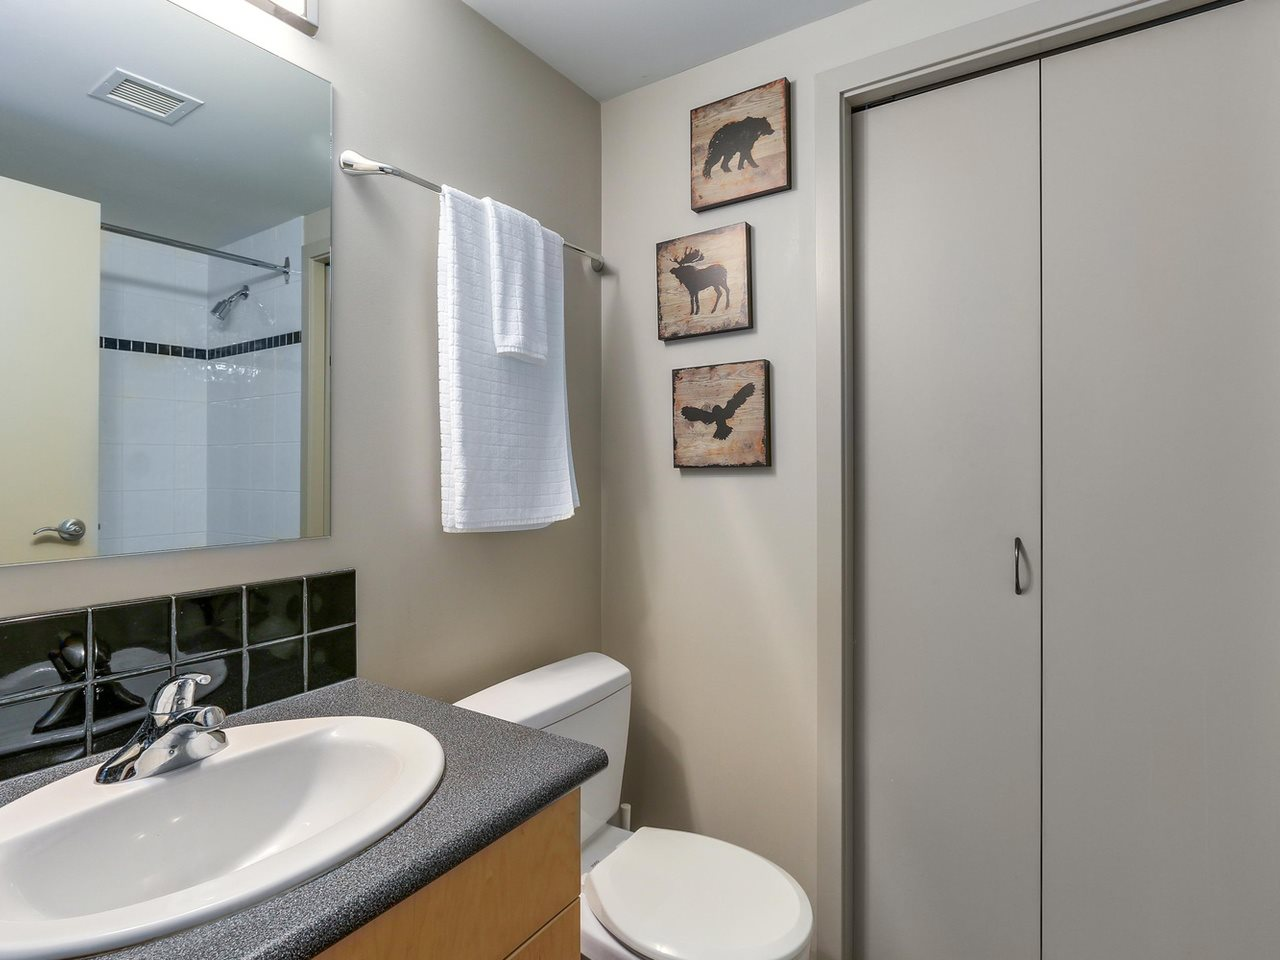 Condo Apartment at 905 STATION STREET, Vancouver East, British Columbia. Image 8